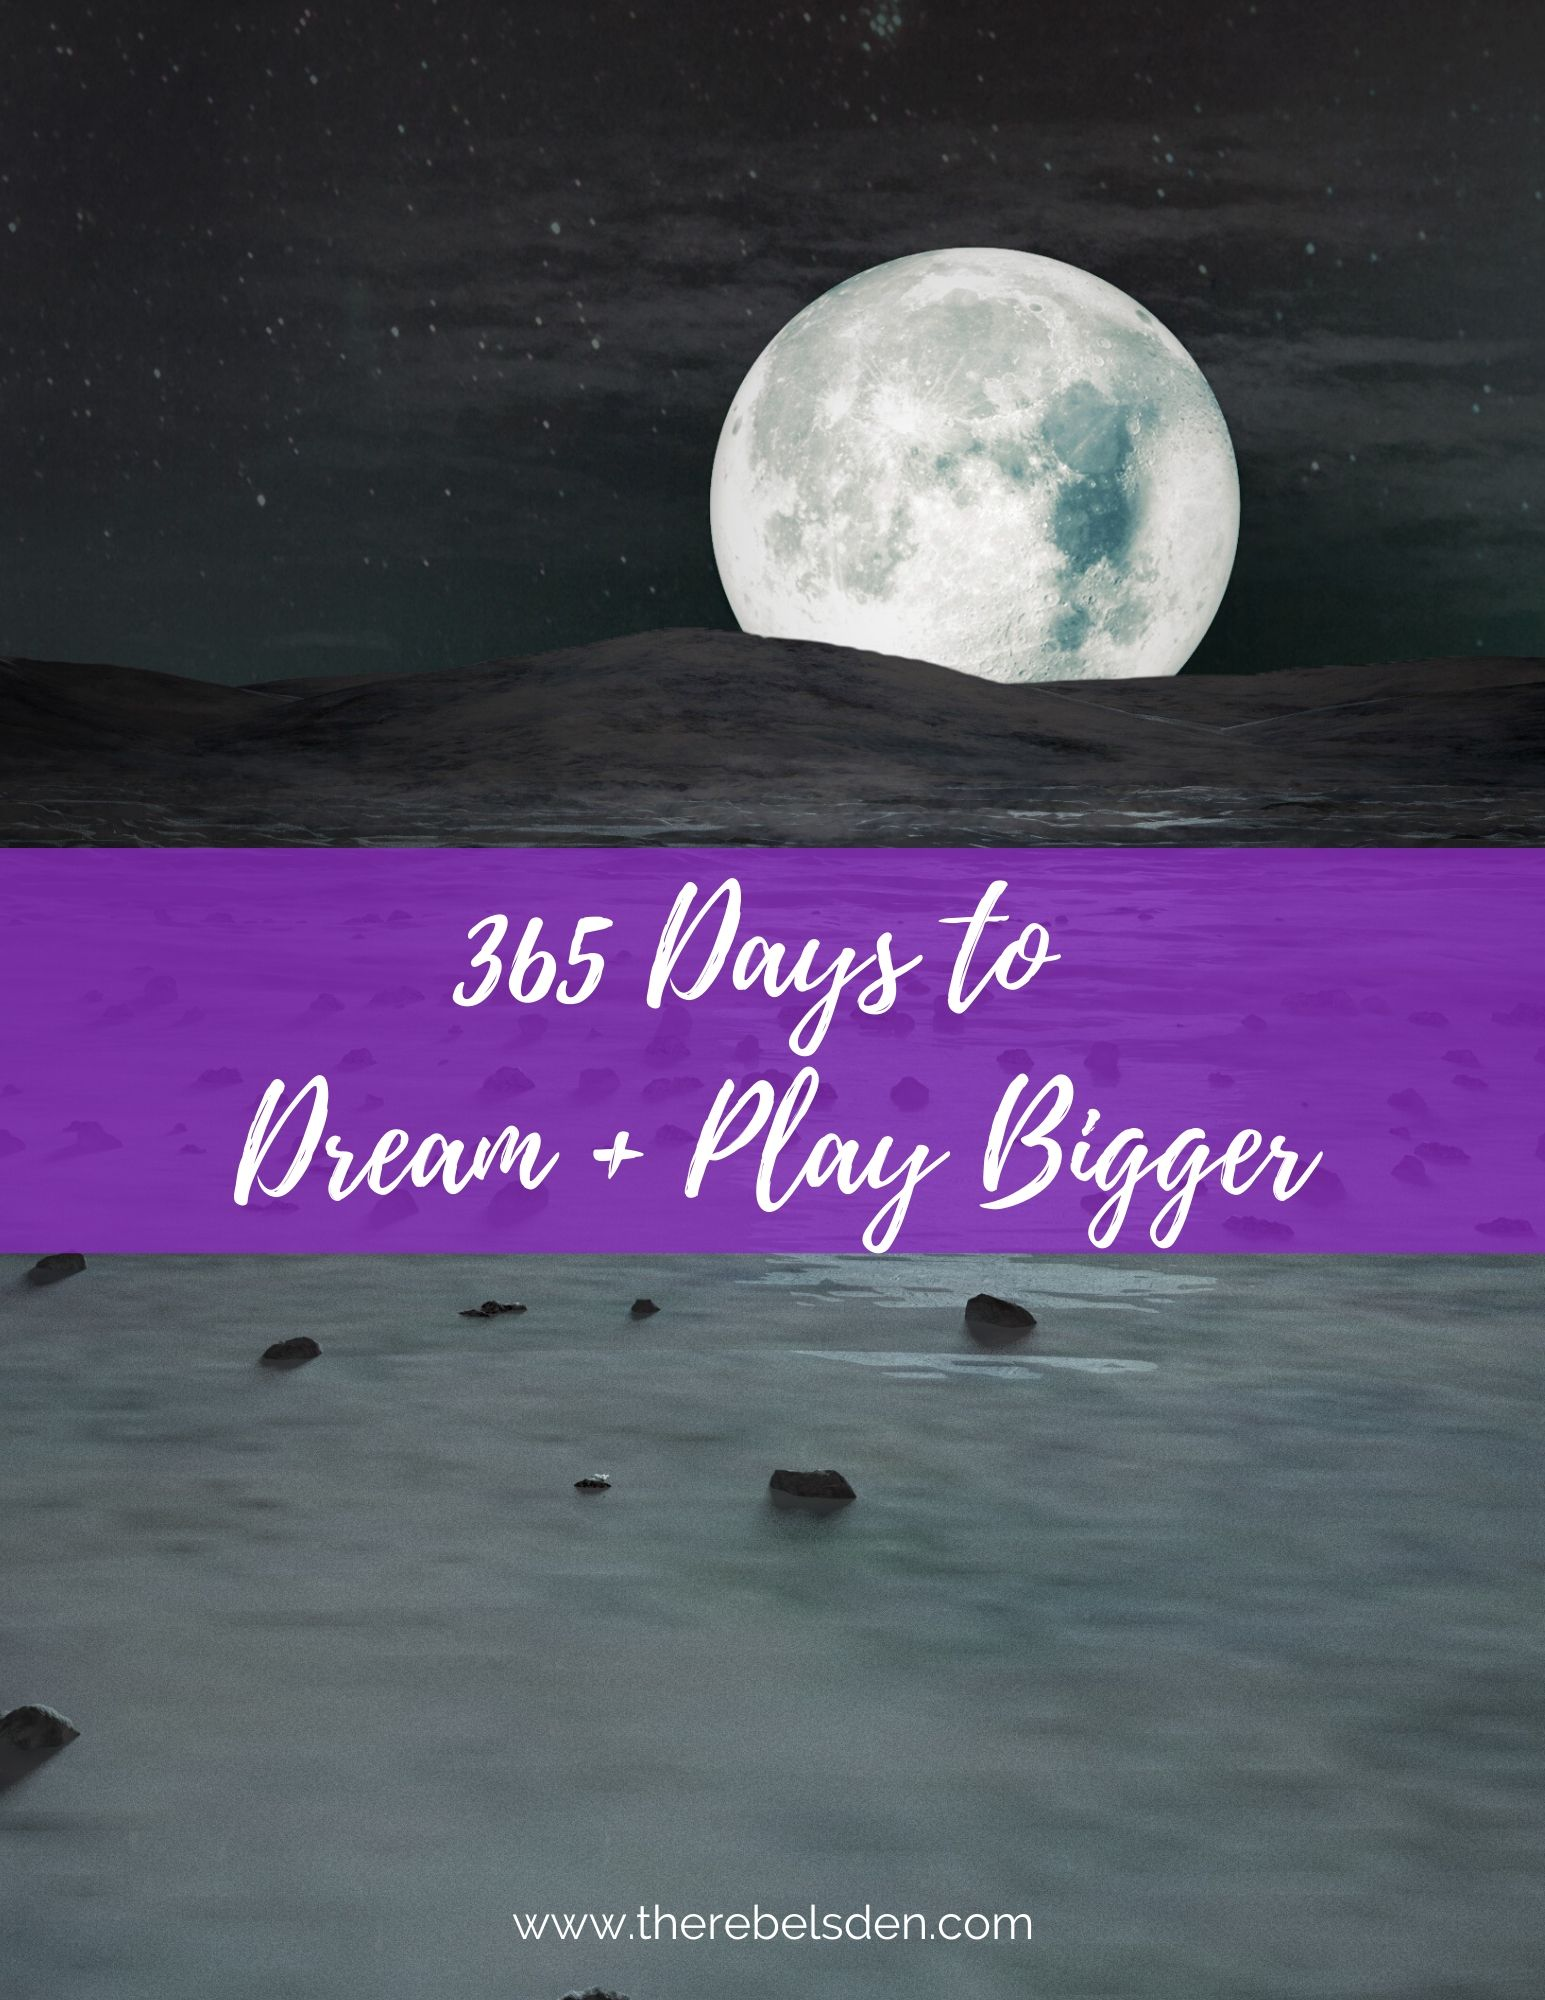 365 Days to Dream + Play Bigger